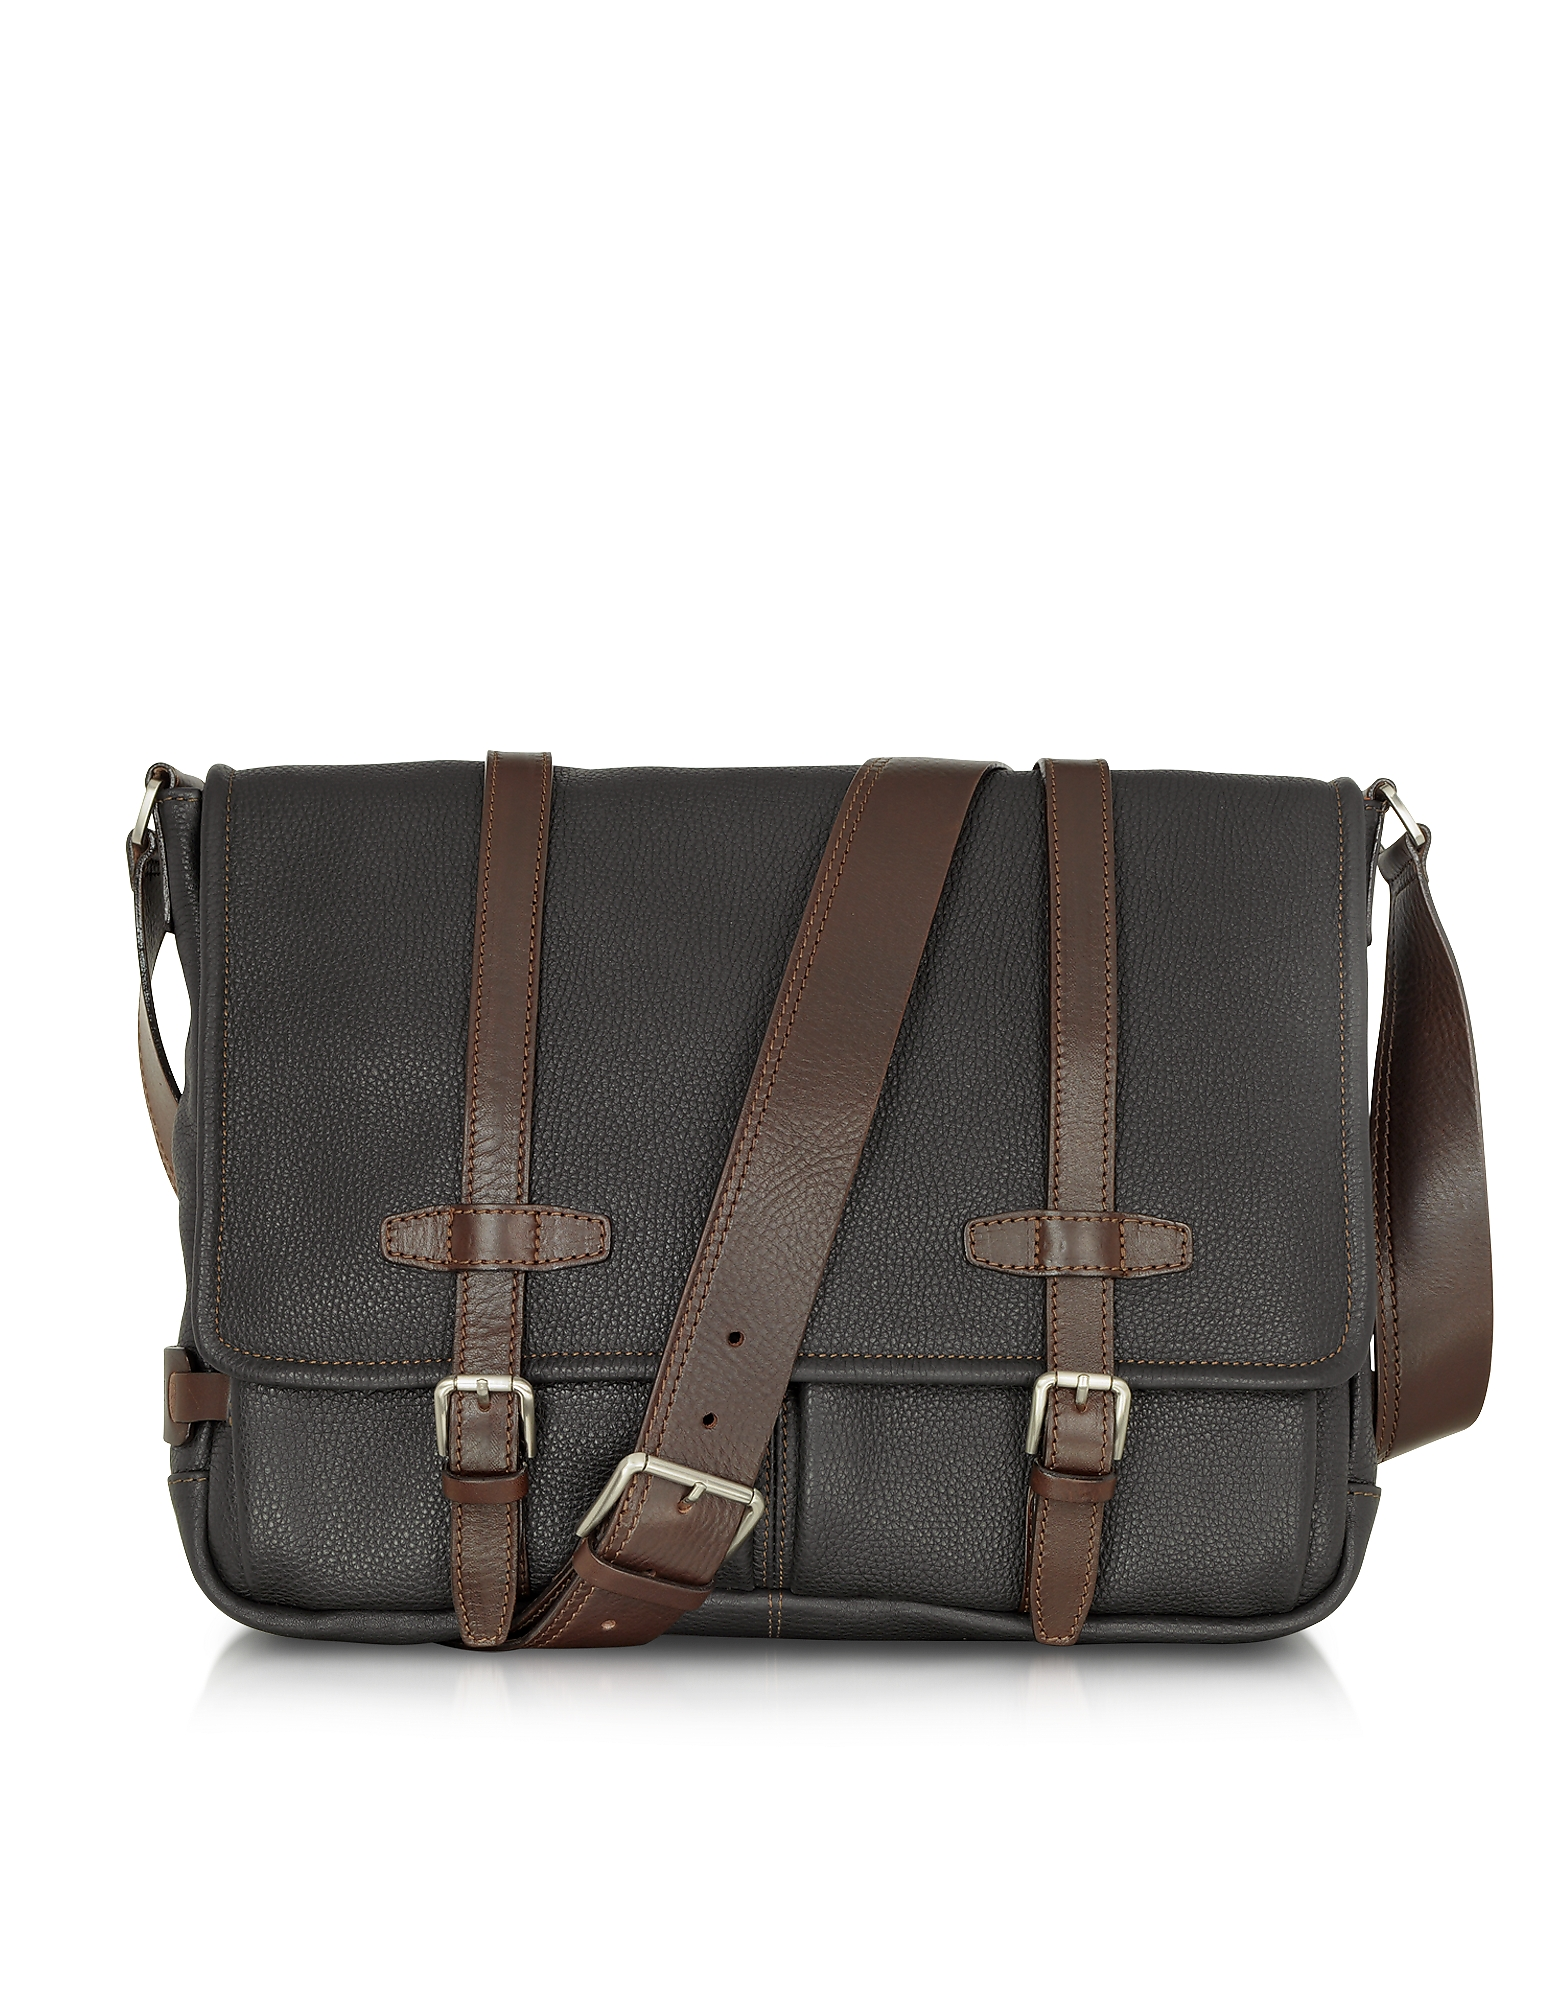 Chiarugi Black and Brown Leather Messenger